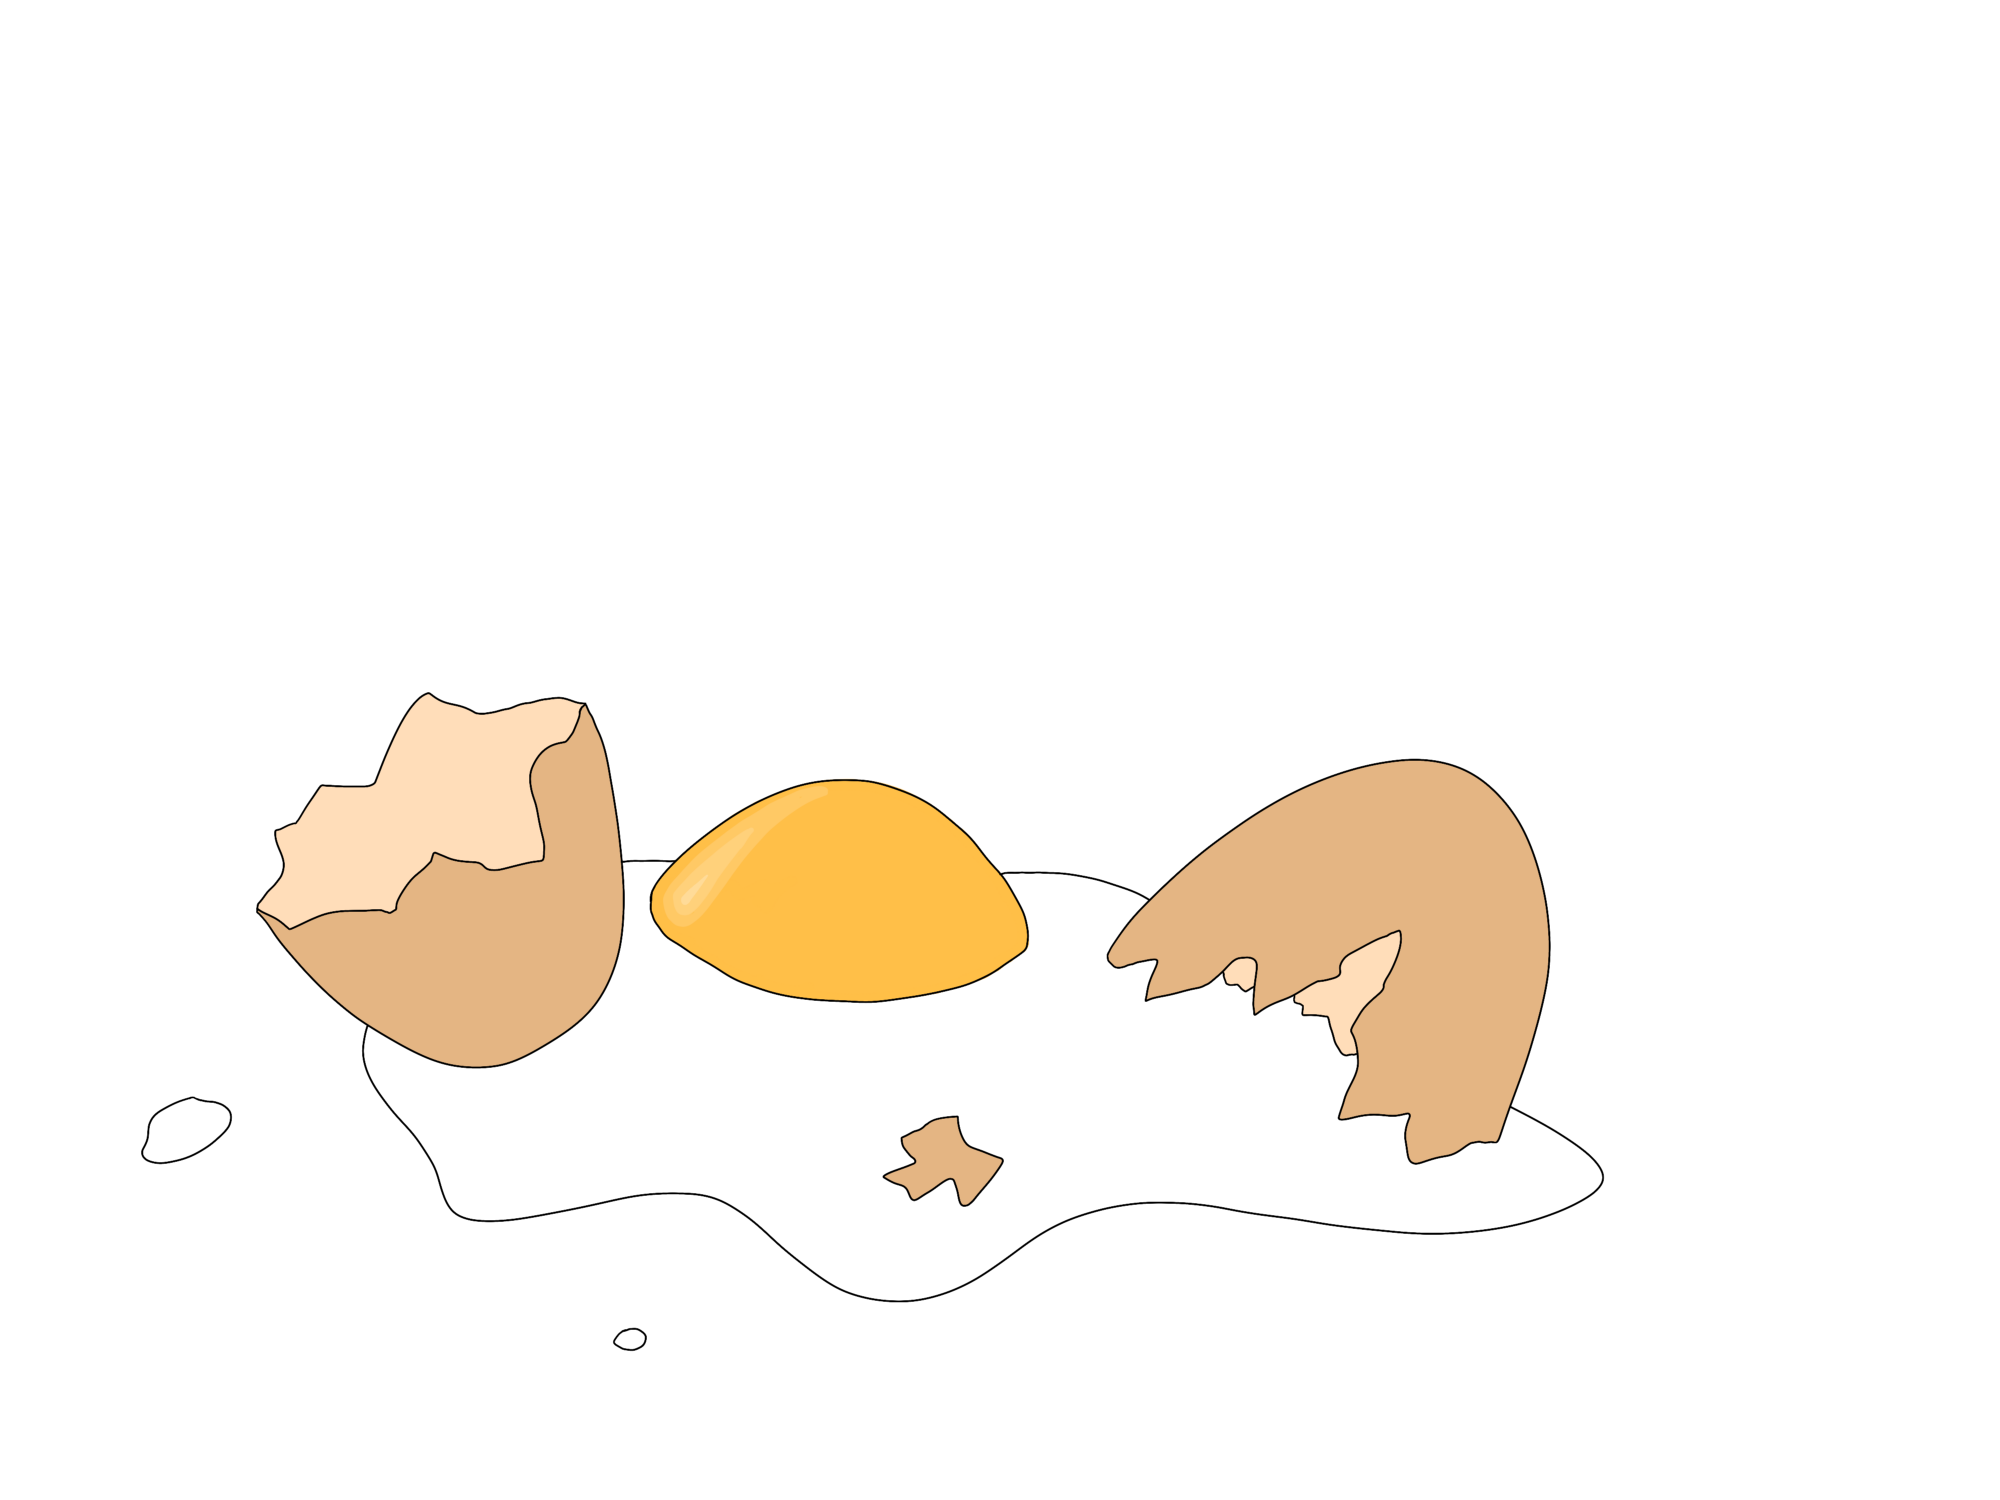 broken egg illustration